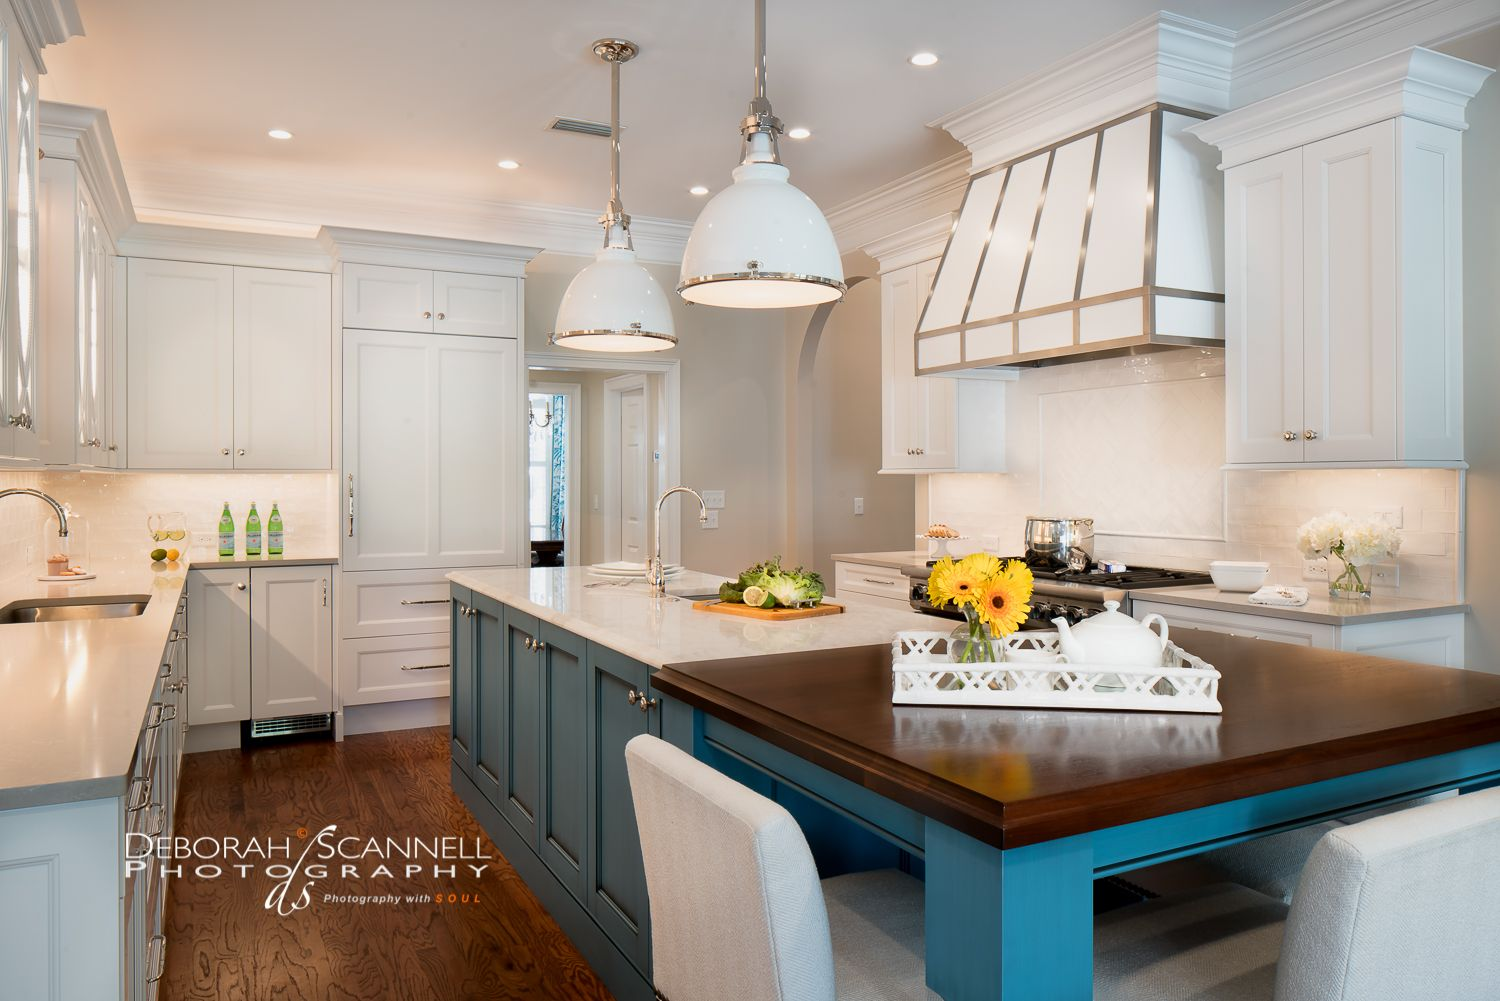 Designed By Kitchens By Design St Simons Island Ga Deborah Scannell Photography Kitchen Design Classic White Kitchen Small Kitchen Cabinets